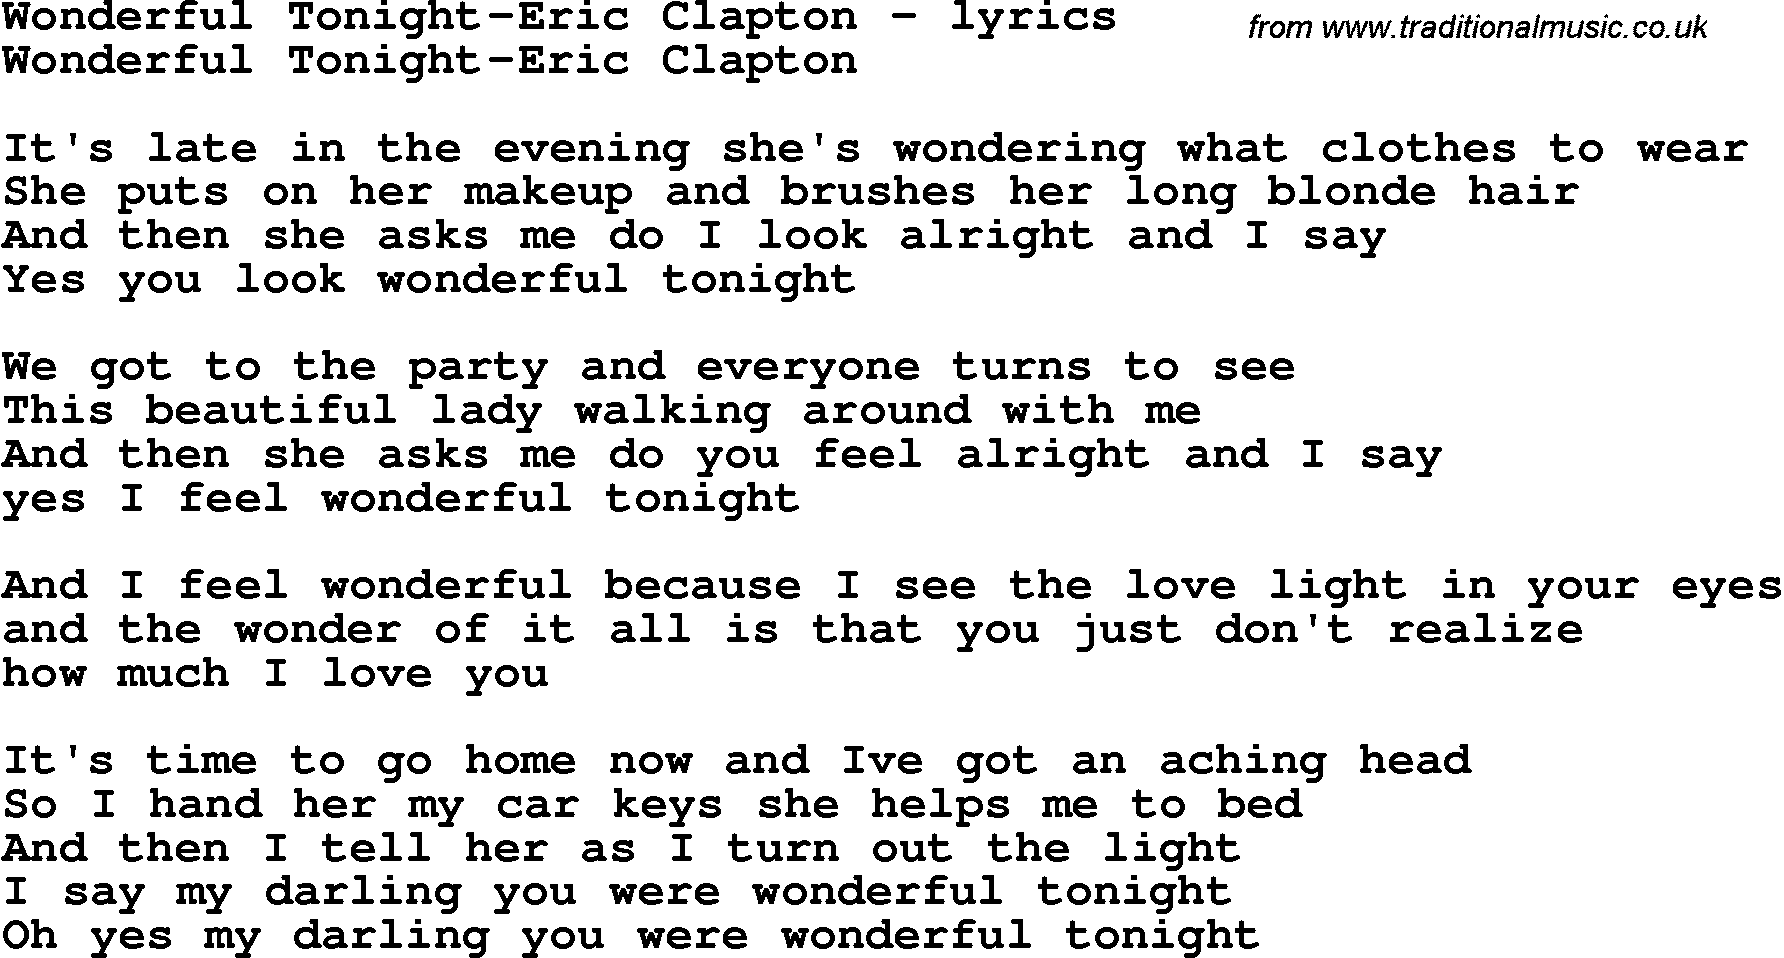 ERIC CLAPTON - BEFORE YOU ACCUSE ME LYRICS